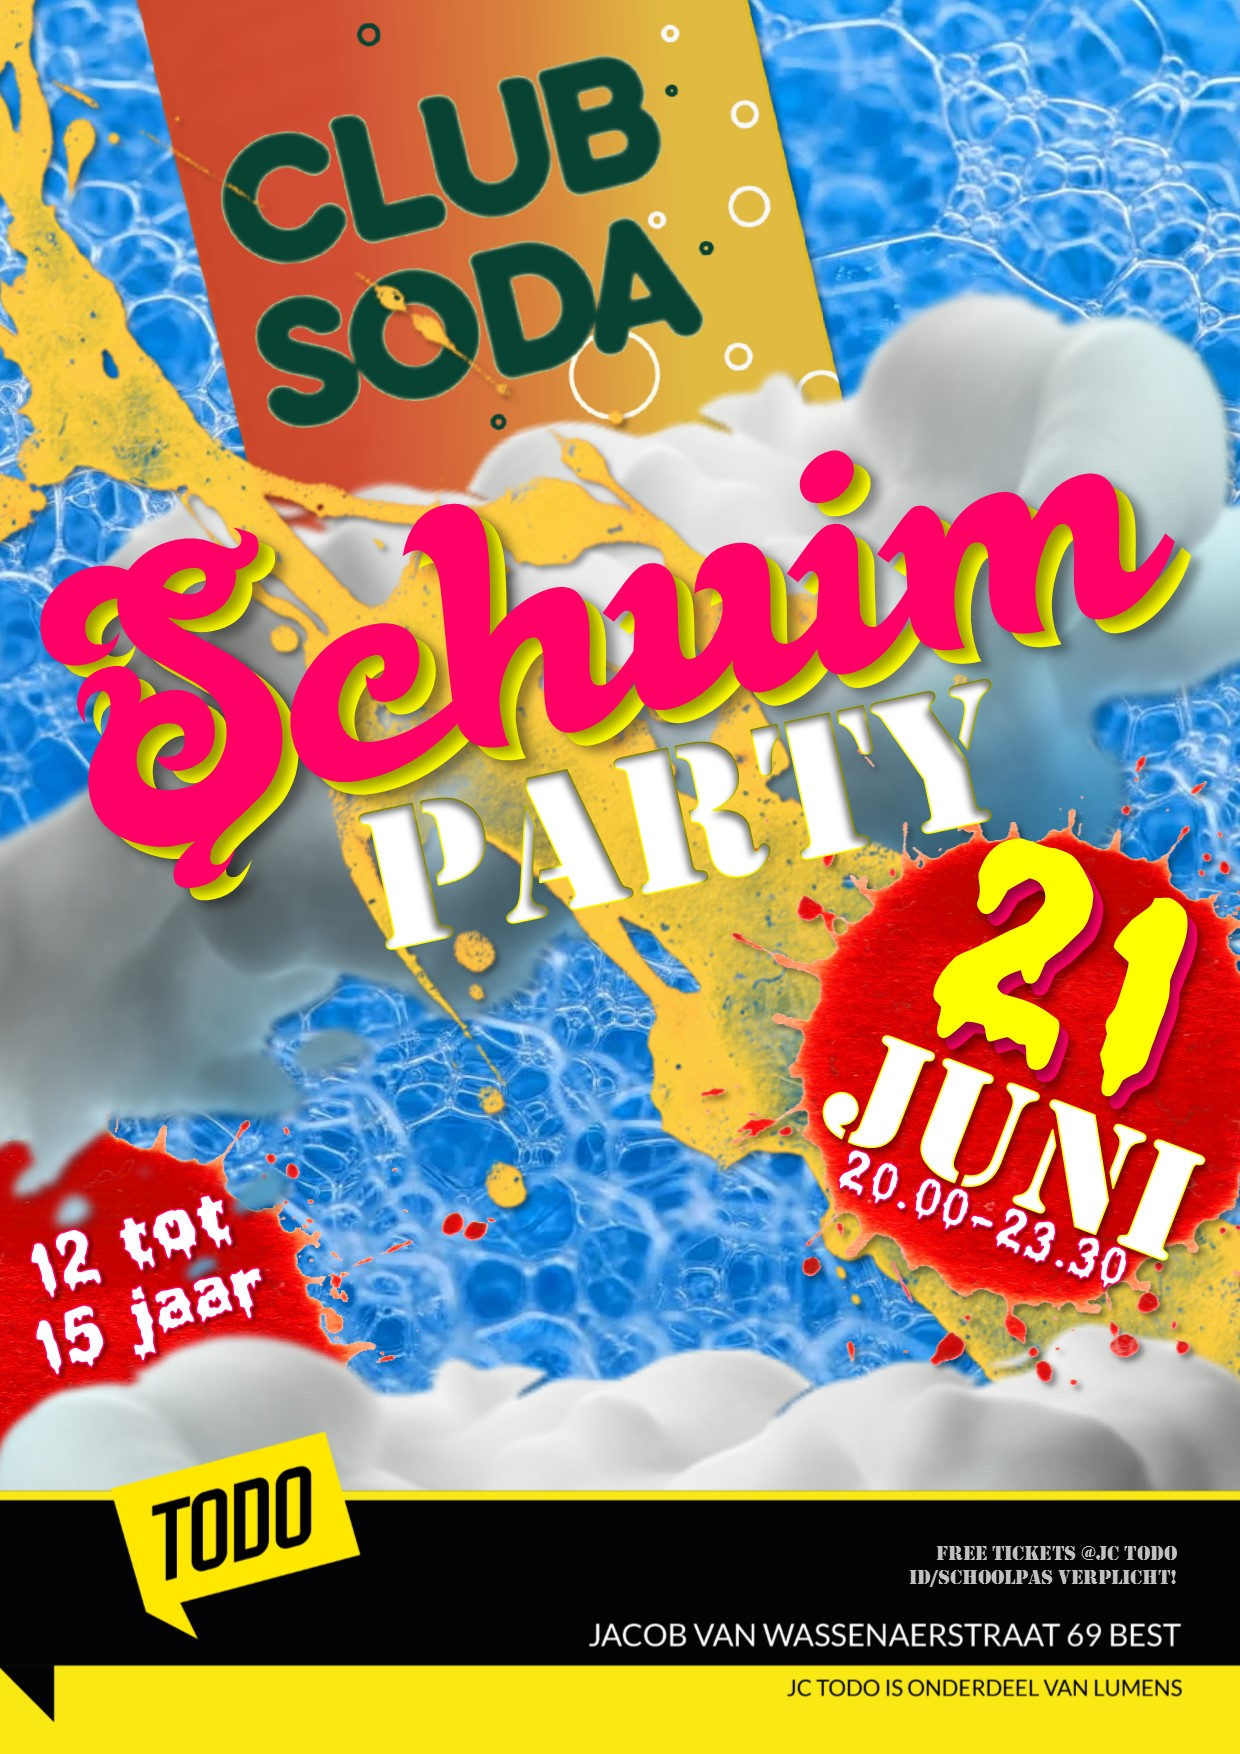 Flyer Schuimparty TODO goed